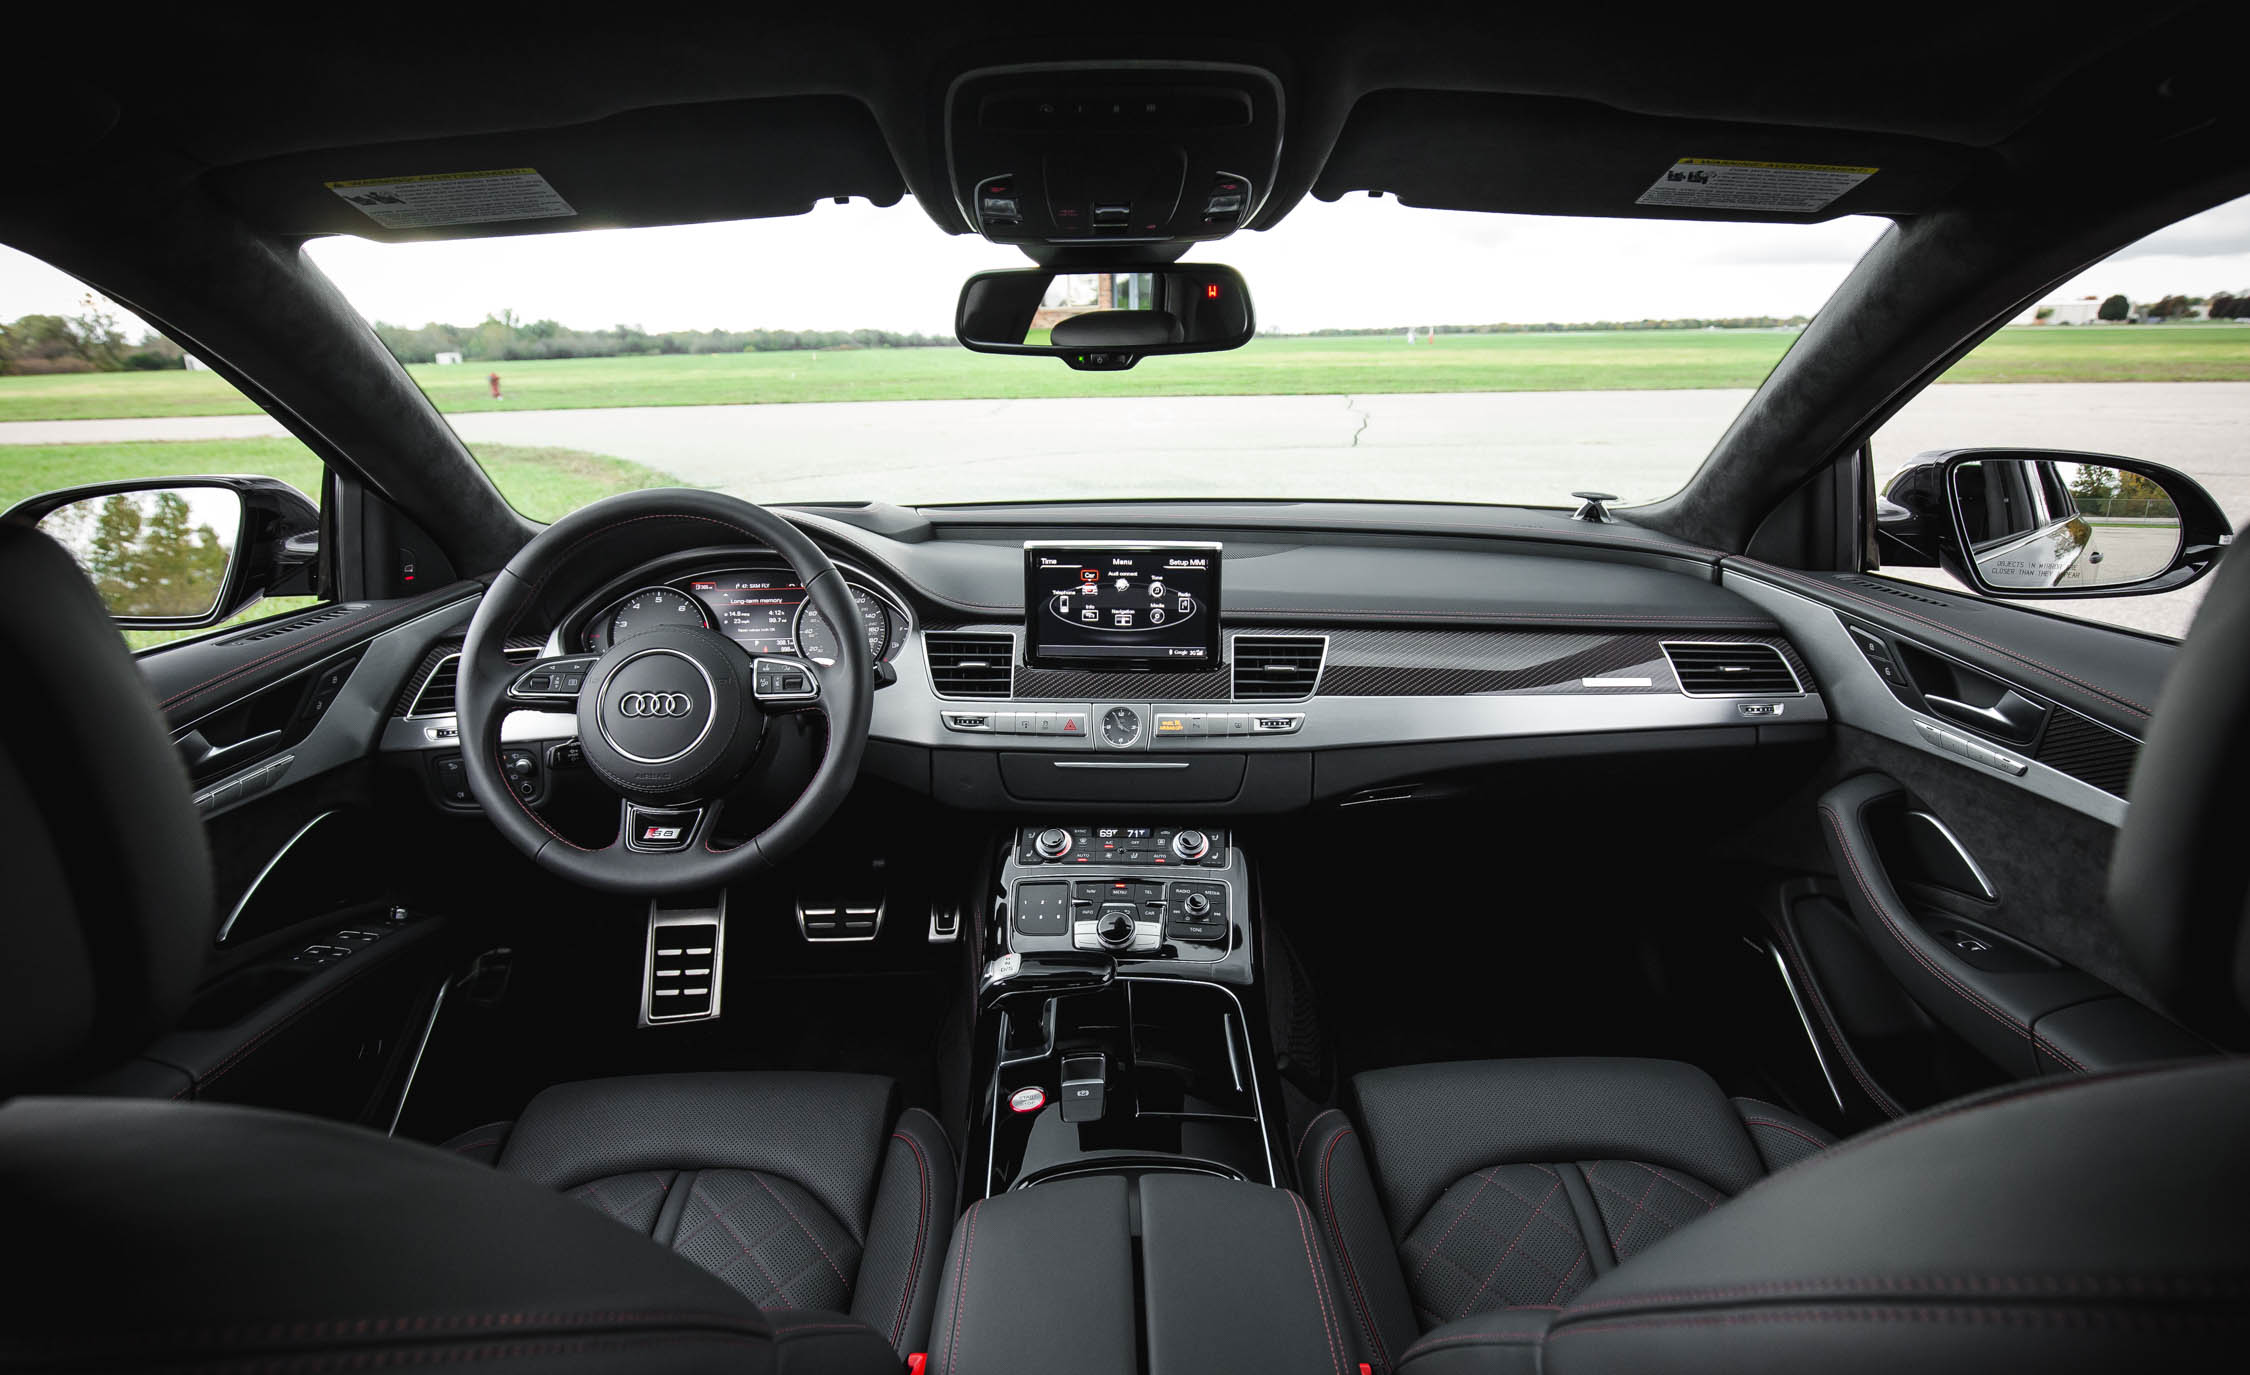 2017 Audi S8 Plus Interior Dashboard (Photo 16 of 36)